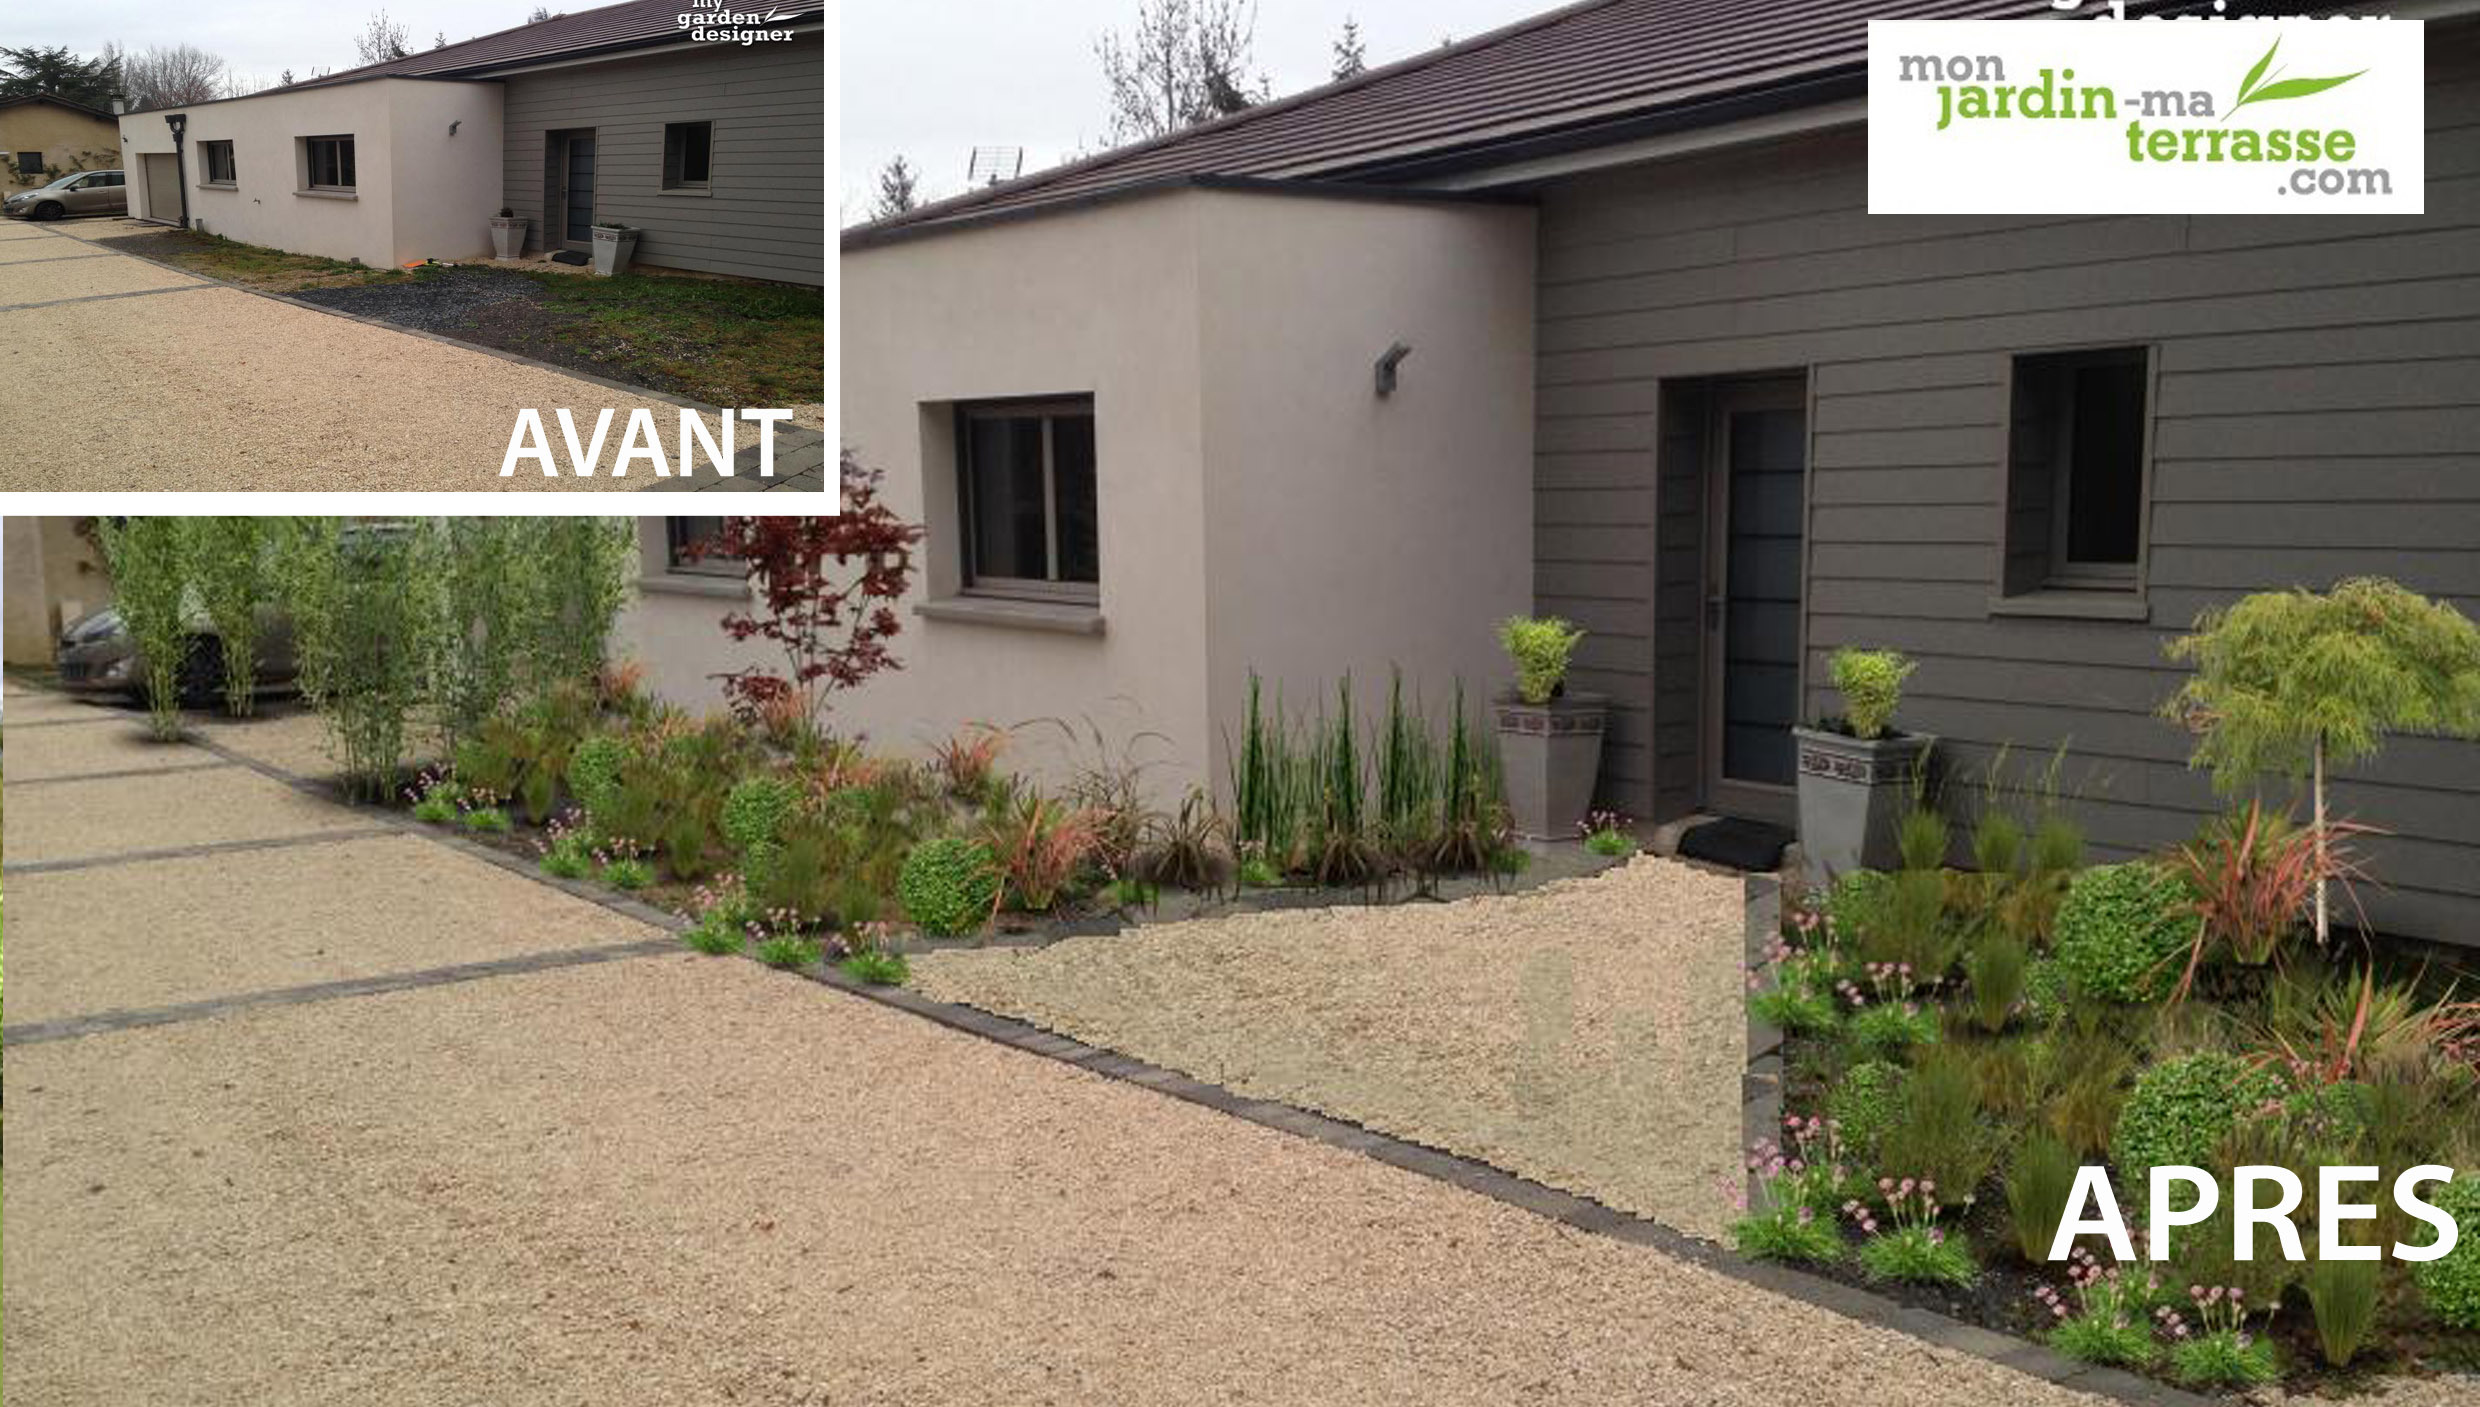 Am nagement du jardin de l entr e d une maison - Amenagement terrasse et jardin photo ...